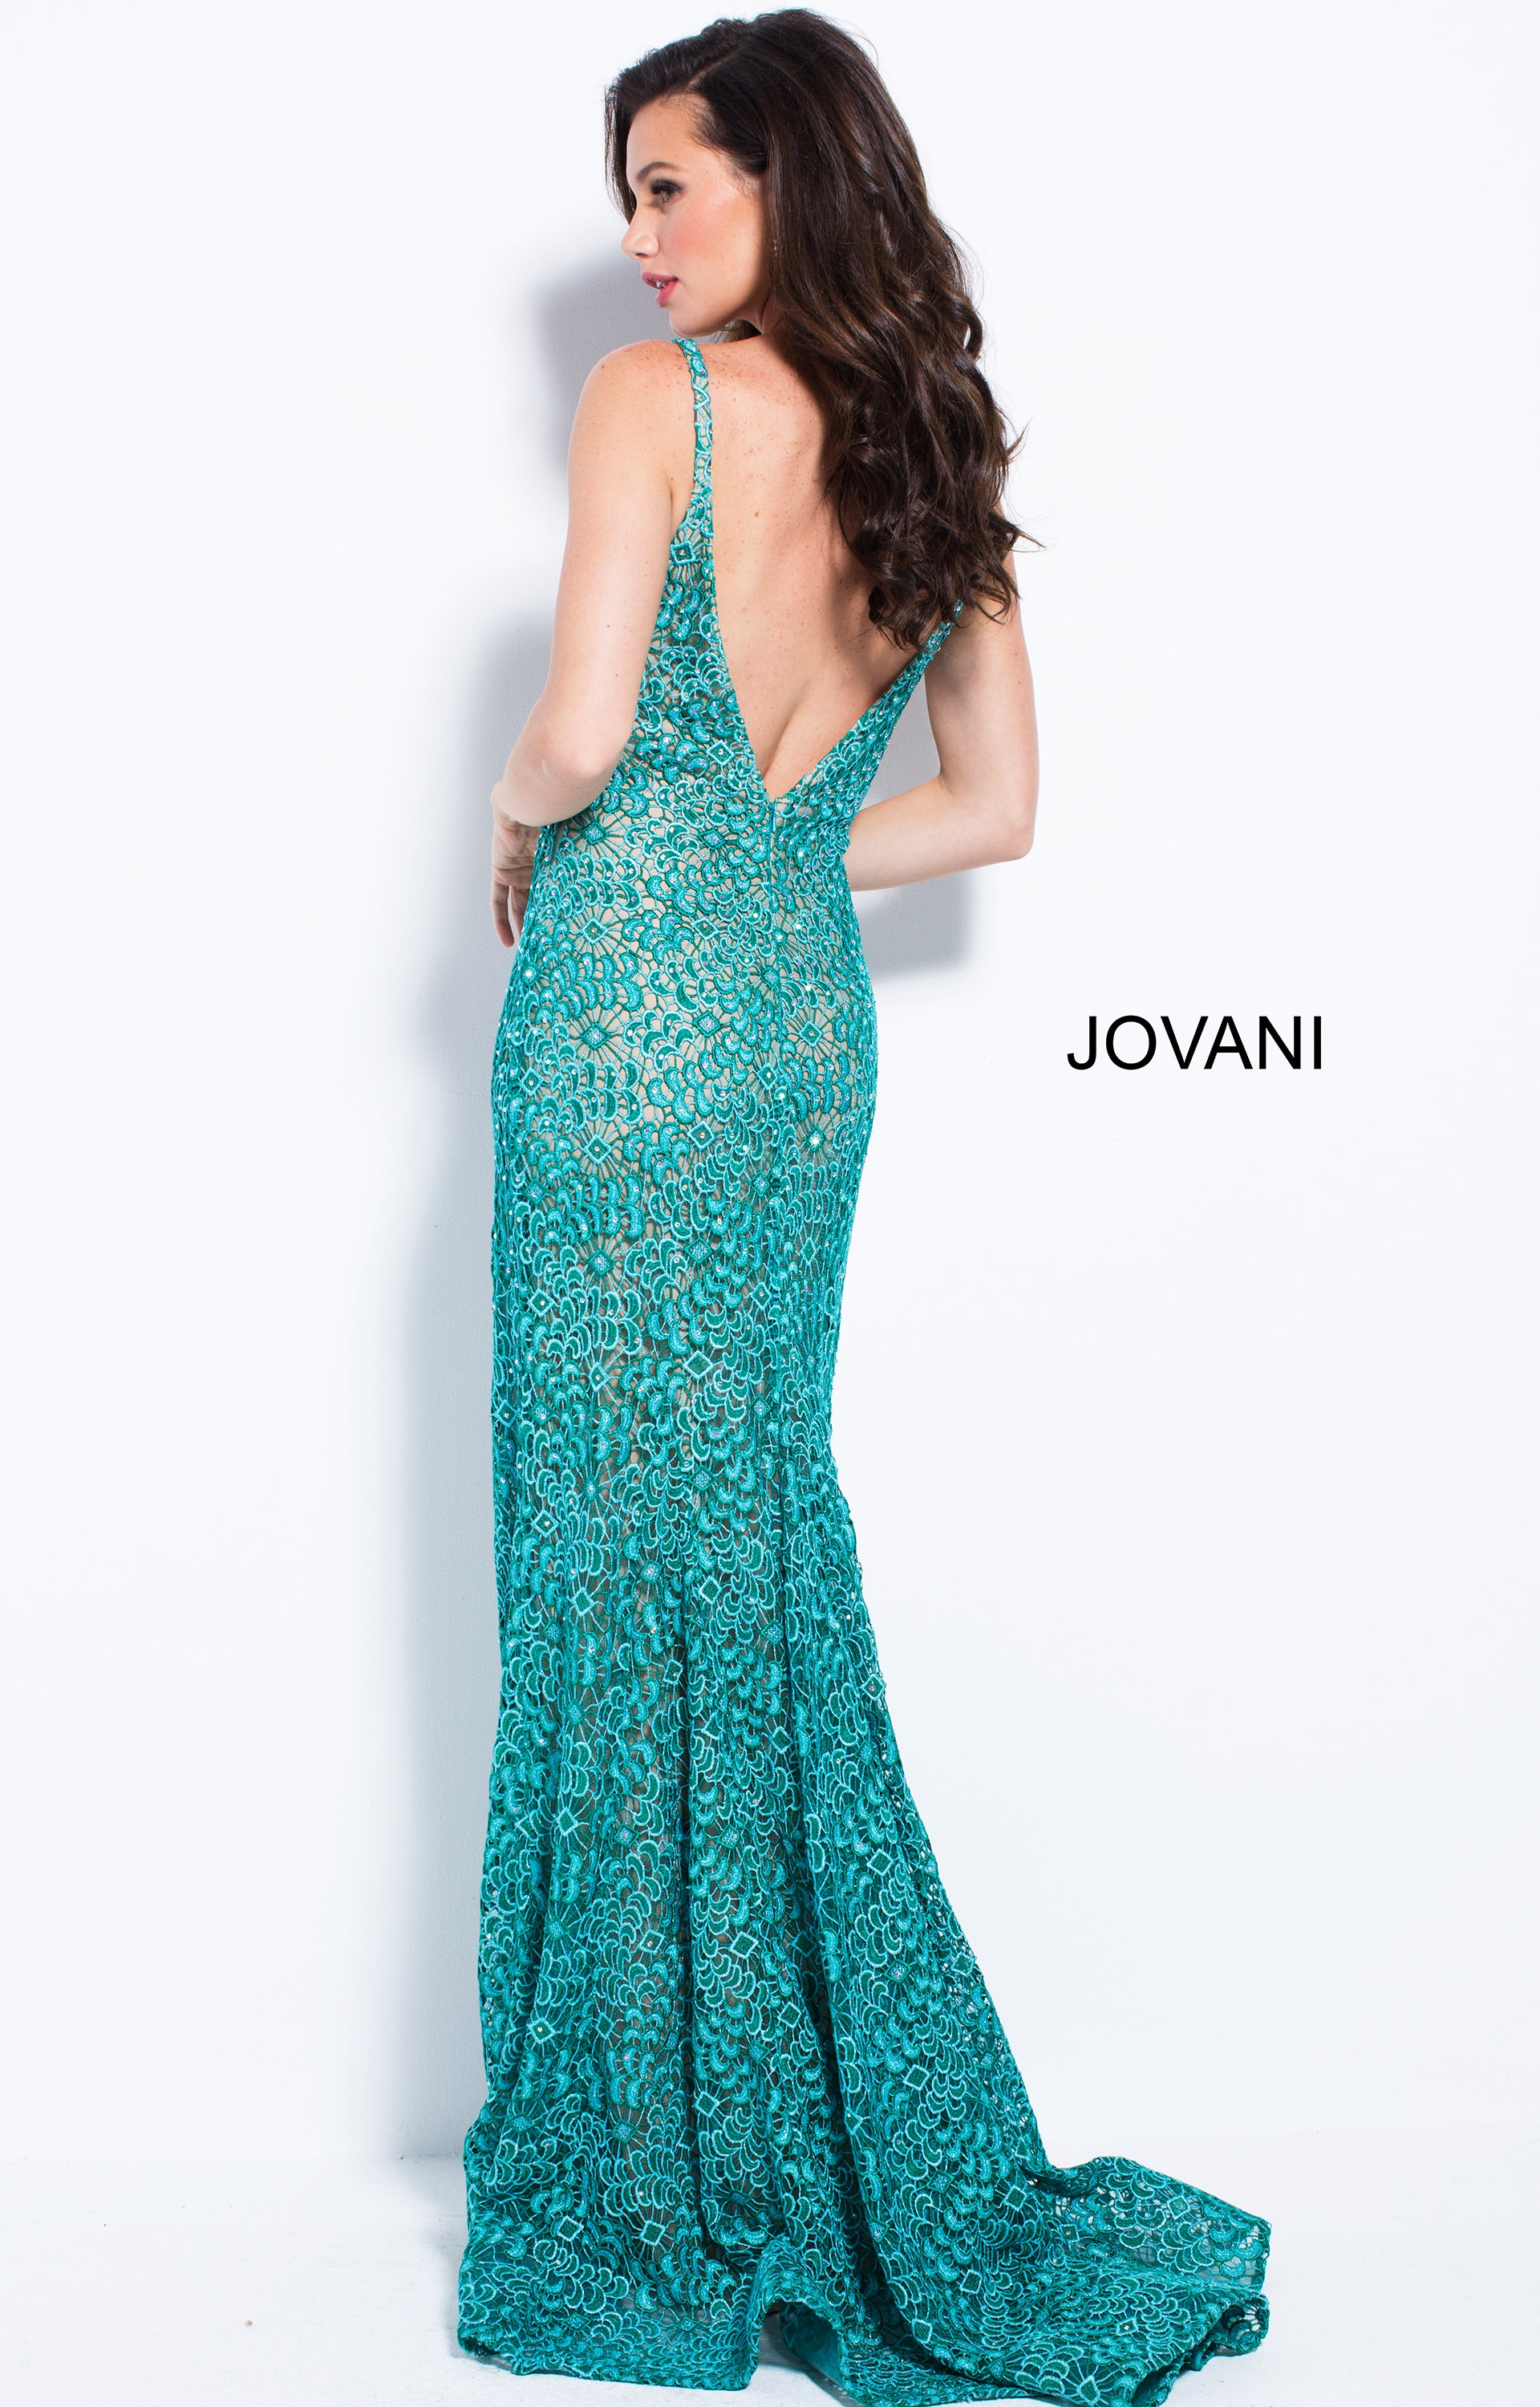 Jovani 58433 - Plunging V-Neck Lace Gown with Side Slit Prom Dress